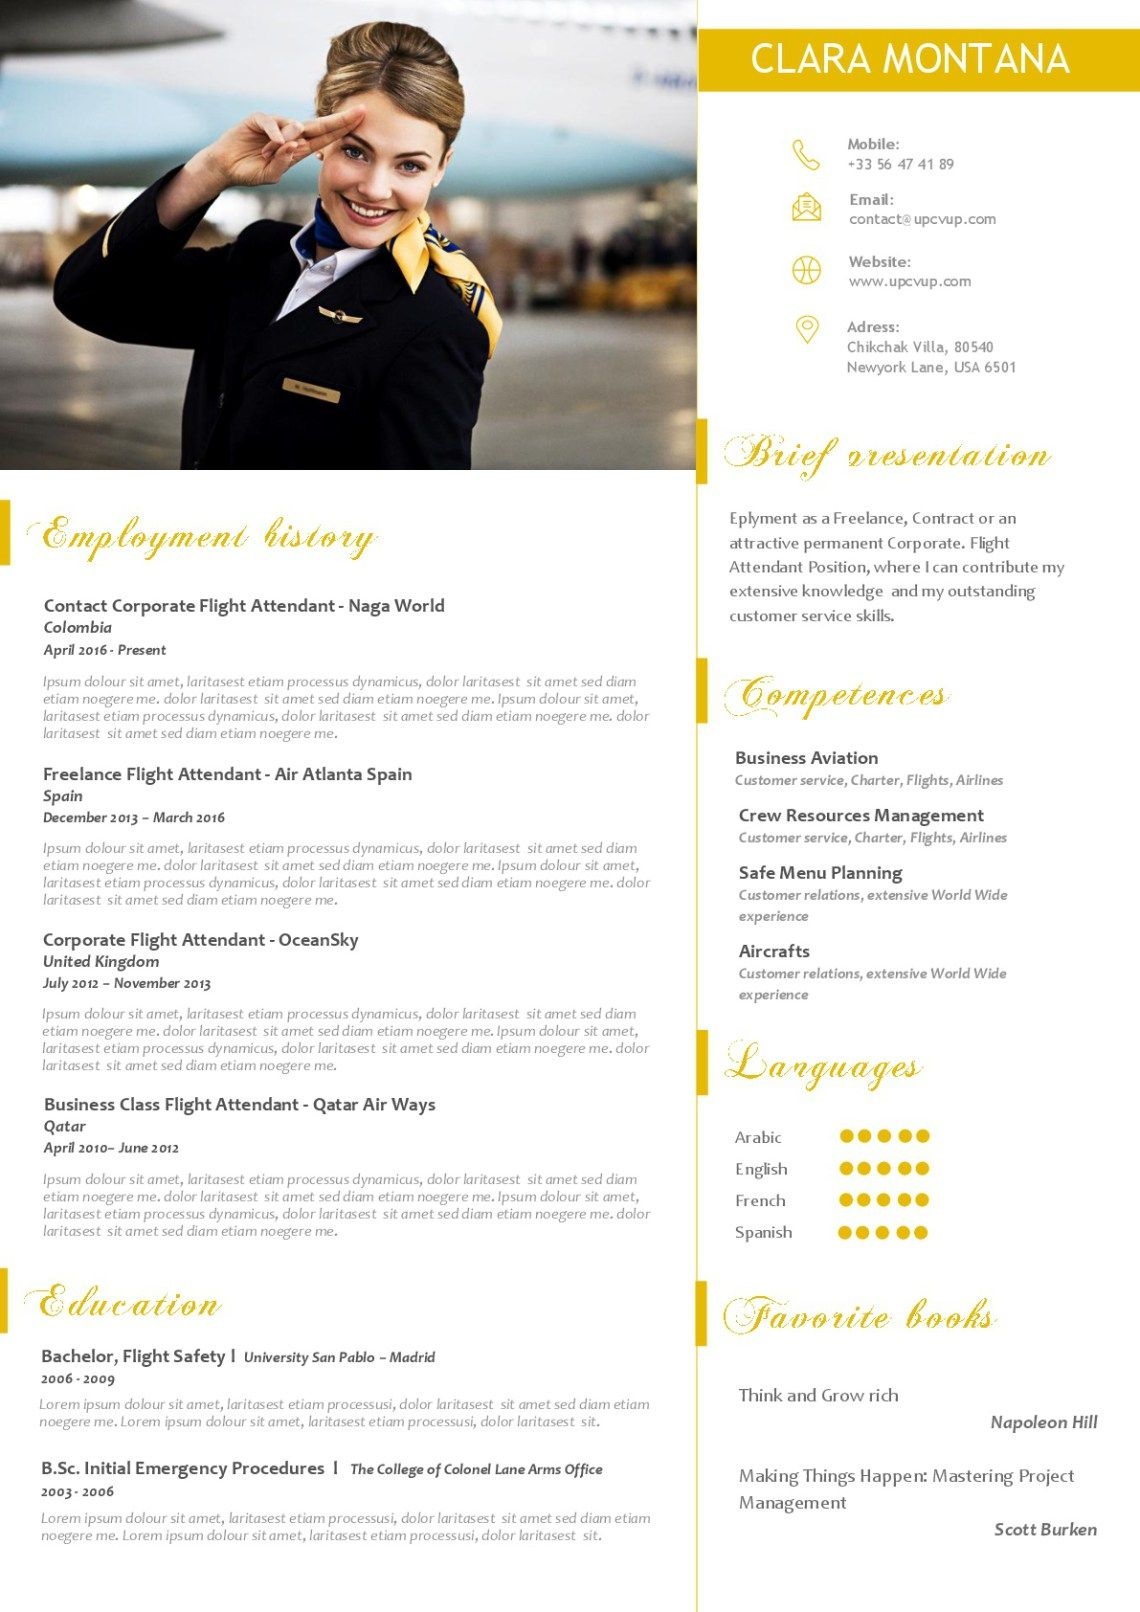 cover letter example for emirates cabin crew templates flight attendant resume experience sample resumes - Cover Letter For Cabin Crew